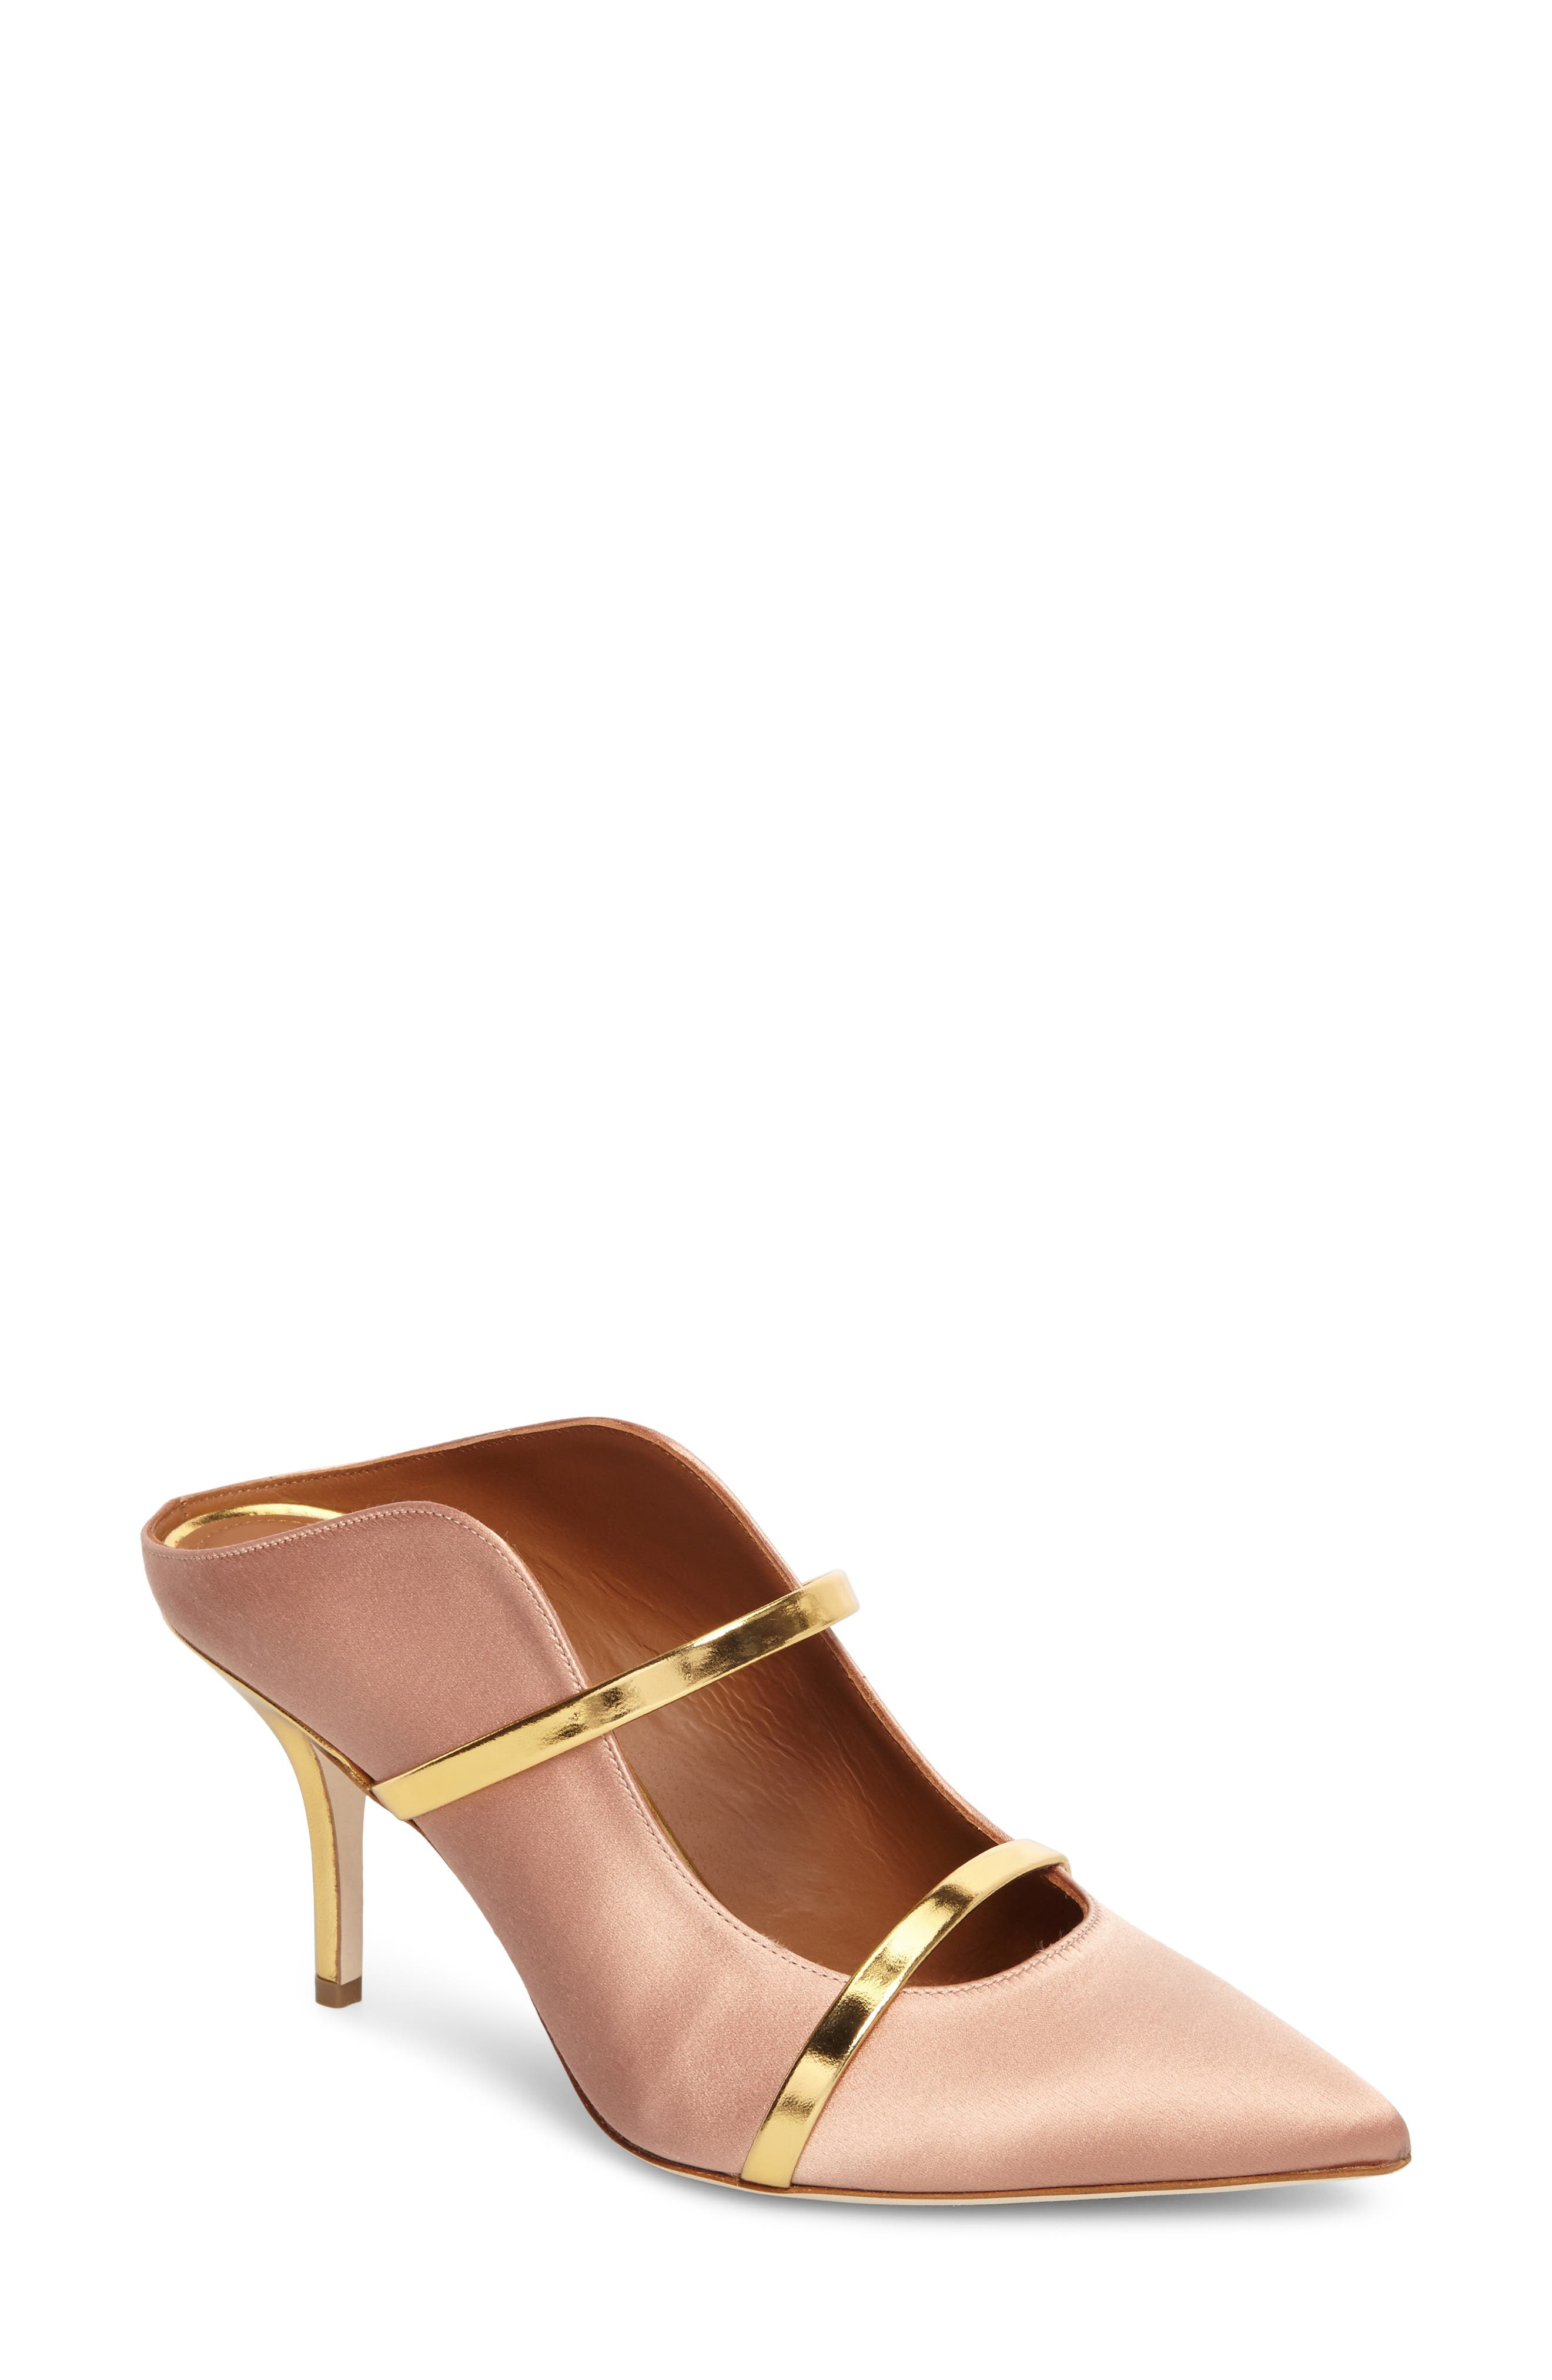 Maureen Double Band Mule,                             Main thumbnail 1, color,                             Blush/ Gold